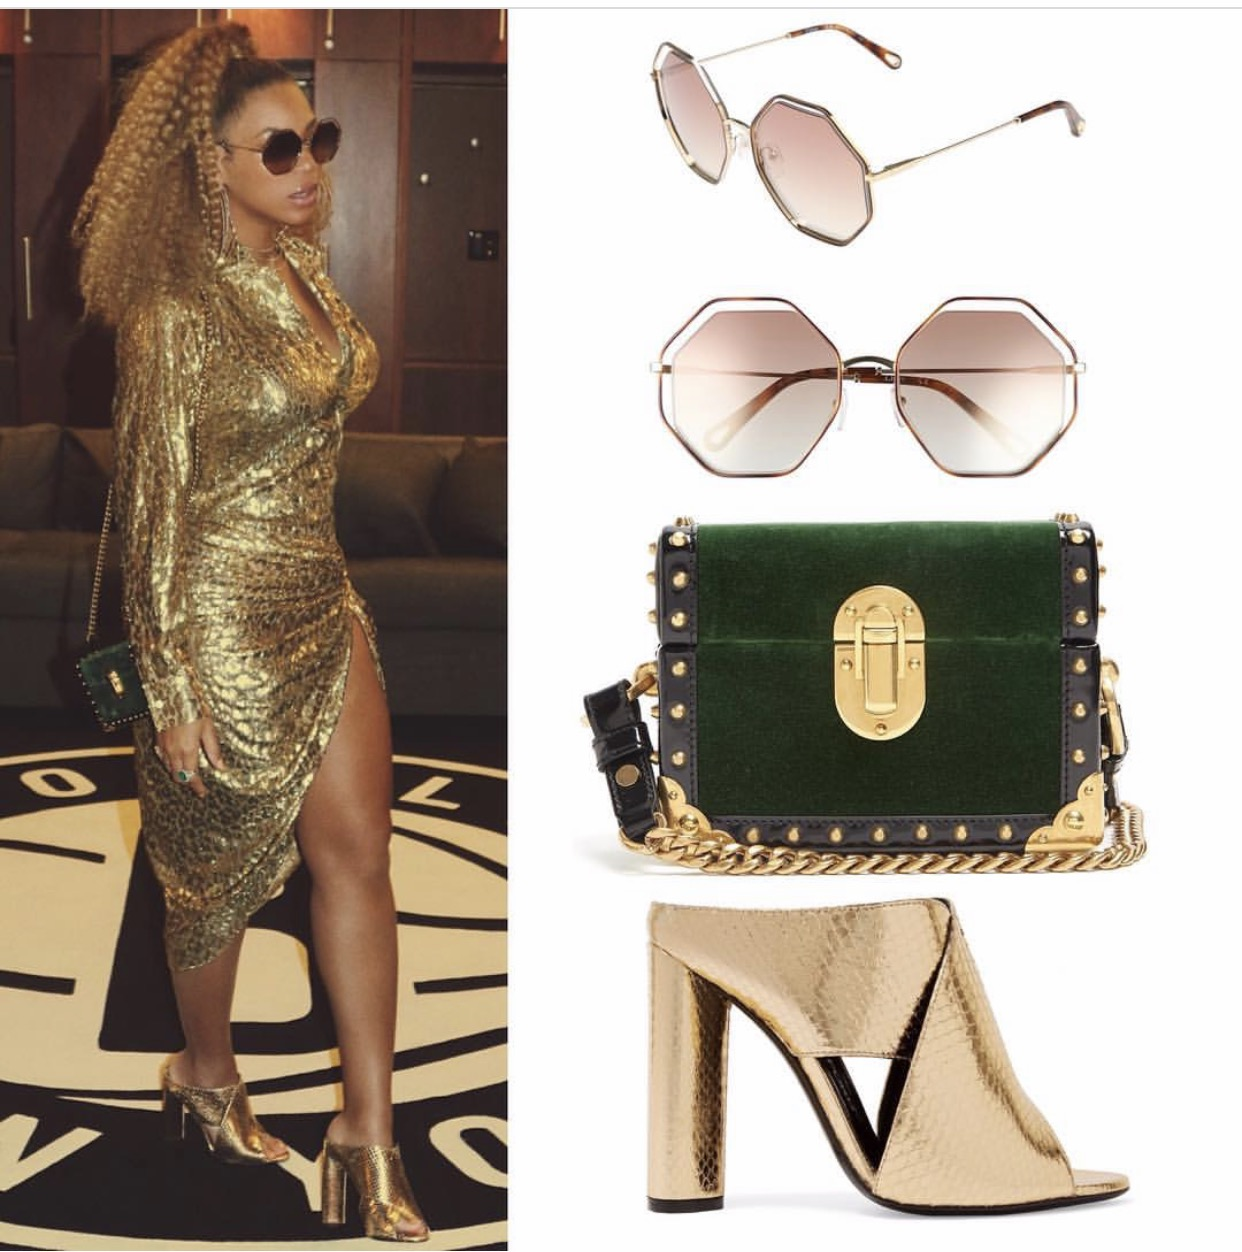 🔹 #Chloe  Octagonal Halo Sunglasses ($396) 🔹 #Prada  Treasure Trunk Mini Box Bag ($2,960) 🔹 #TomFord  Metallic Ayers Mules ($645) Photo credit and details from: Instagram/beyonce.fashion